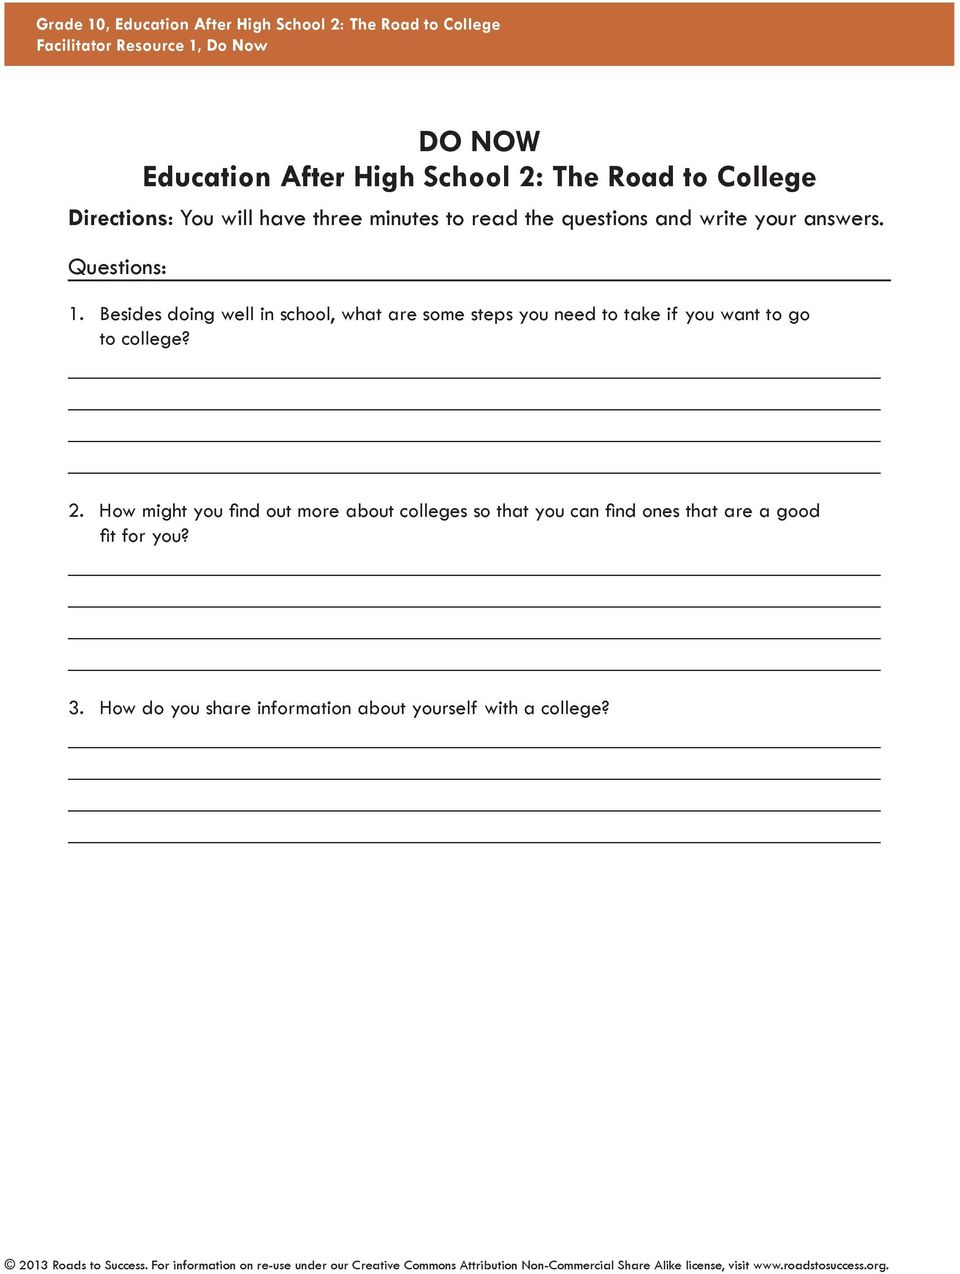 Besides doing well in school, what are some steps you need to take if you want to go to college? 2.